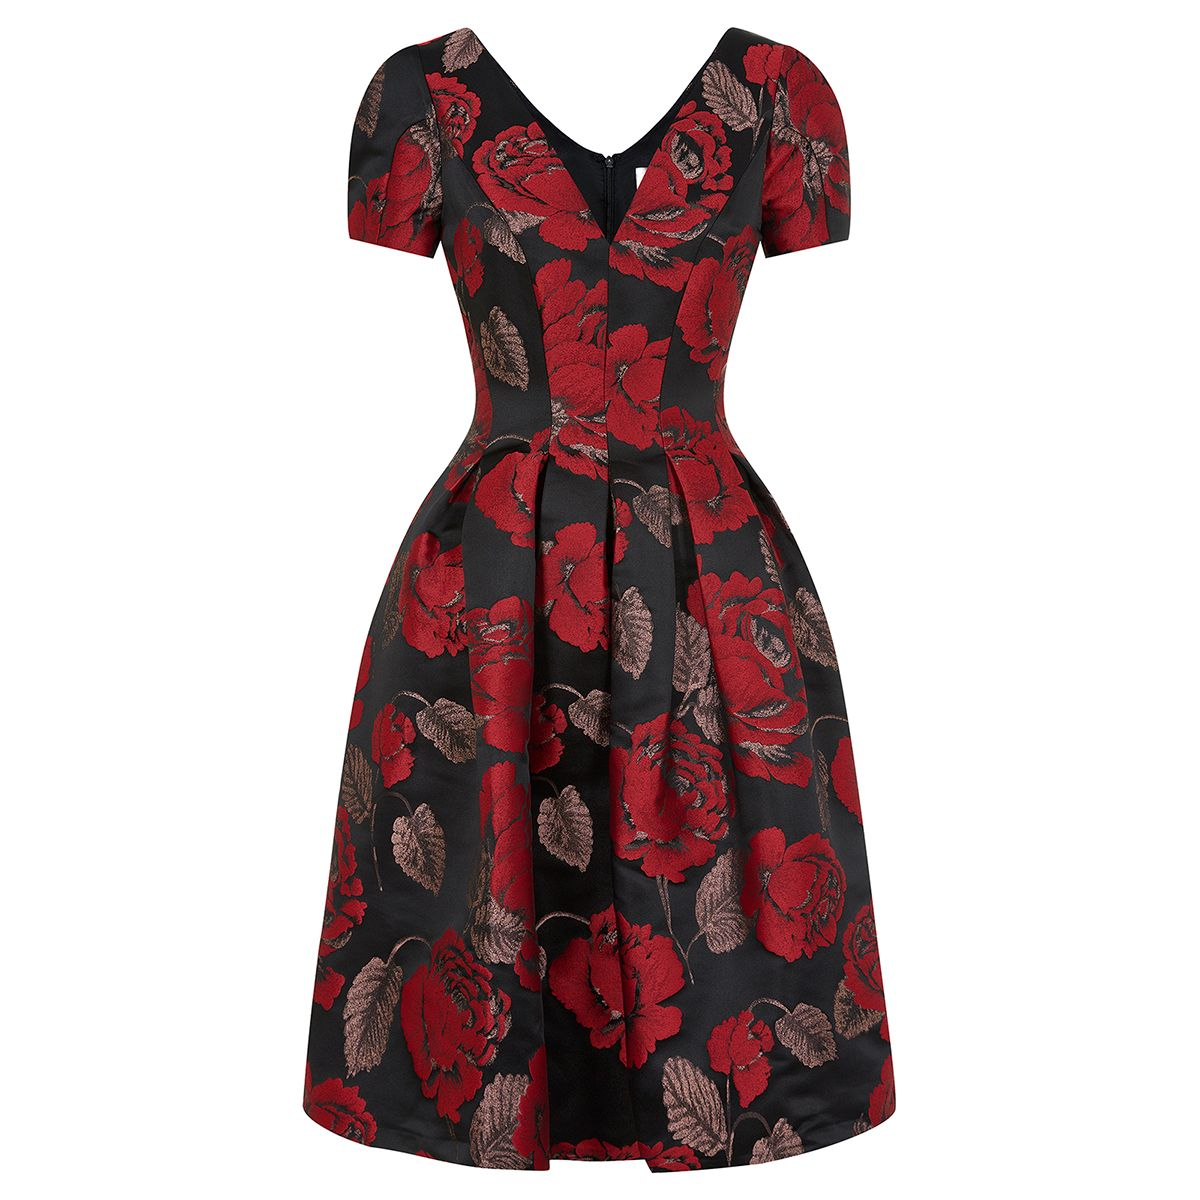 Nice Christmas Party Dresses: 15 Christmas Party Dresses To See You Through The Festive